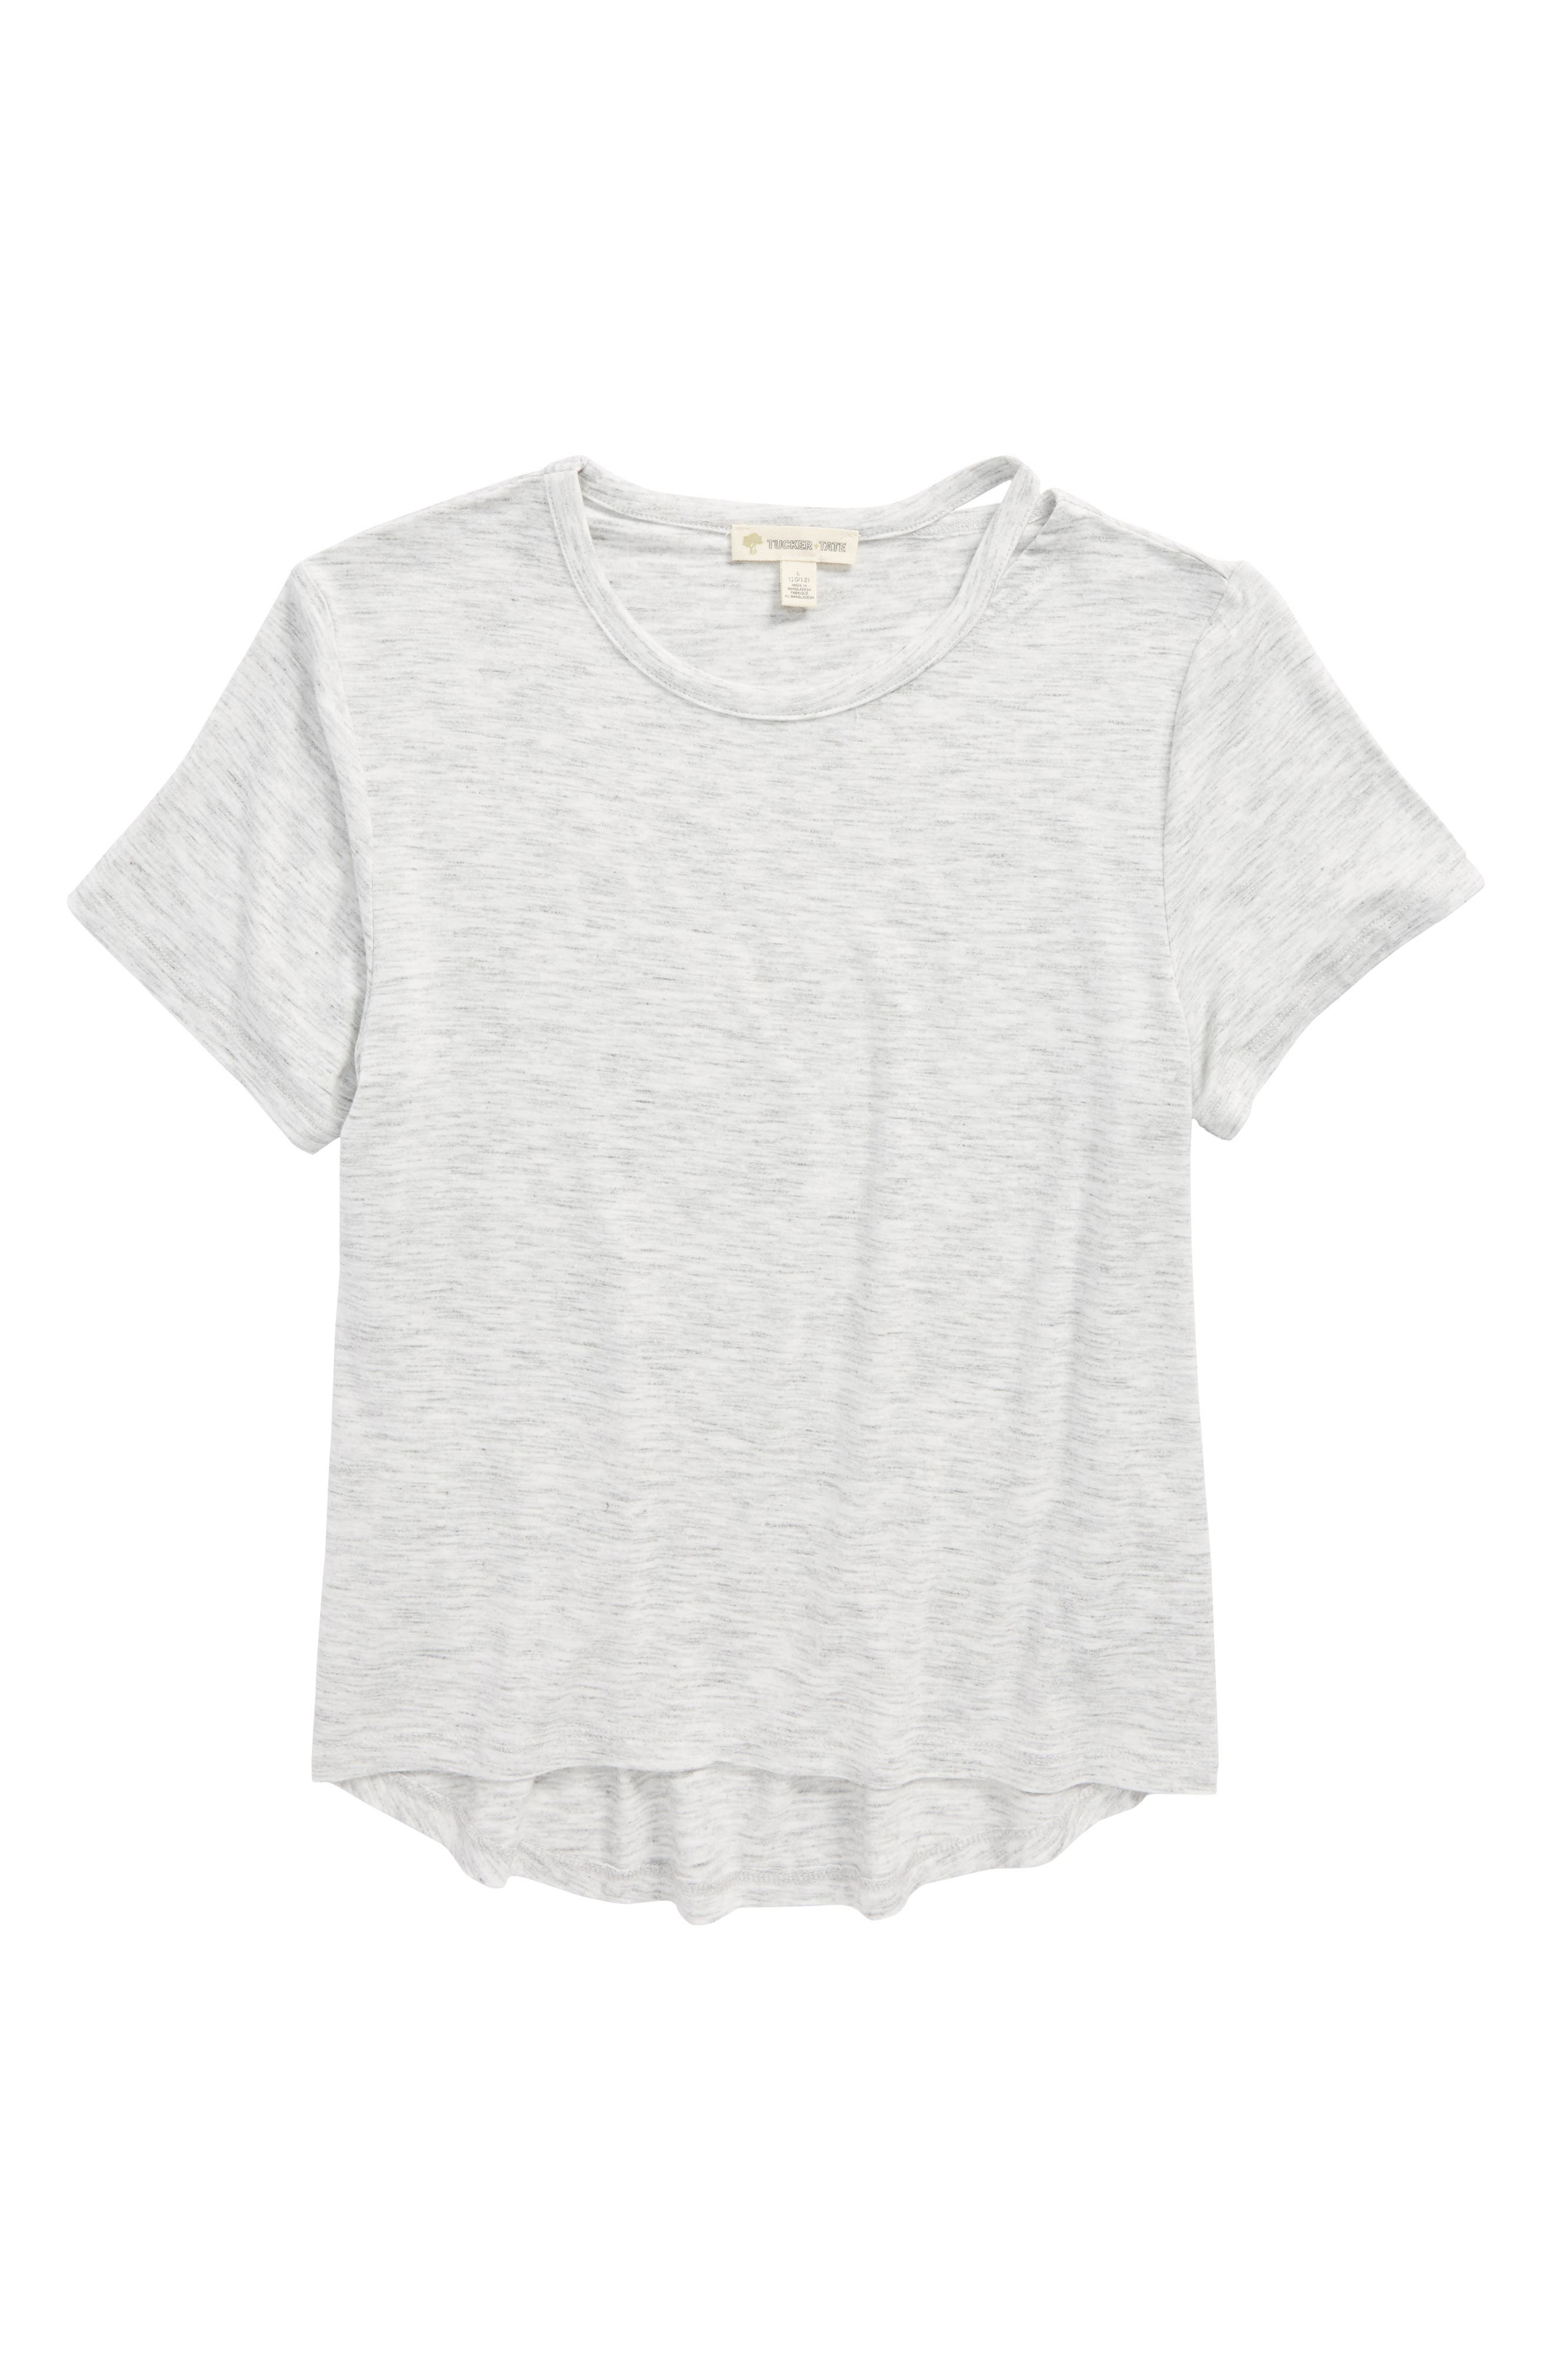 Tucker + Tate Split Neck Tee (Big Girls)